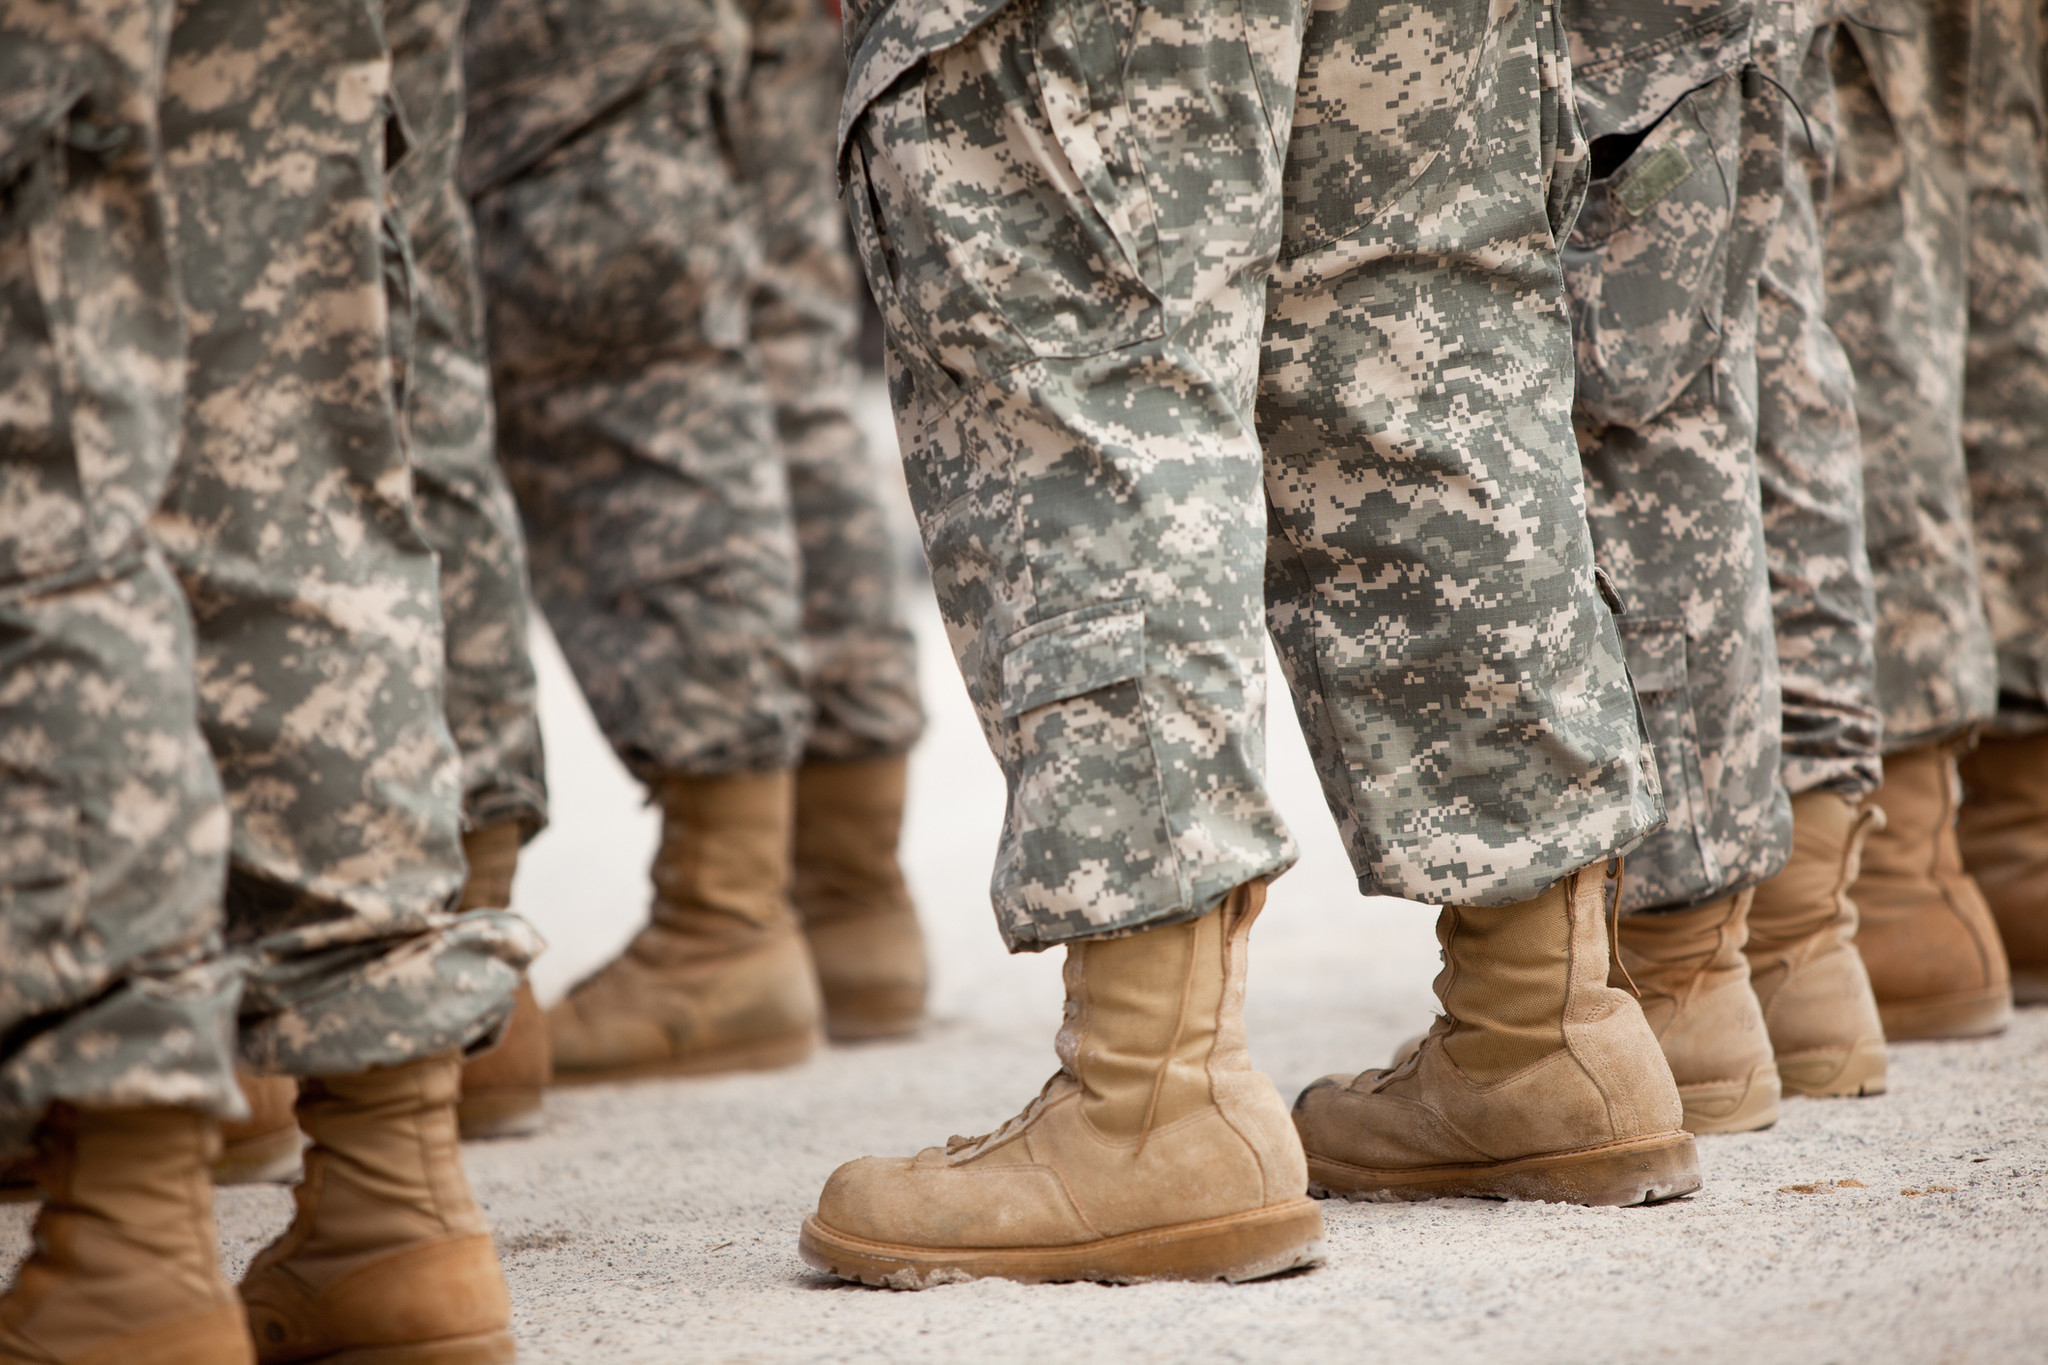 2 men kicked out of Georgia National Guard for ties to white supremacist group